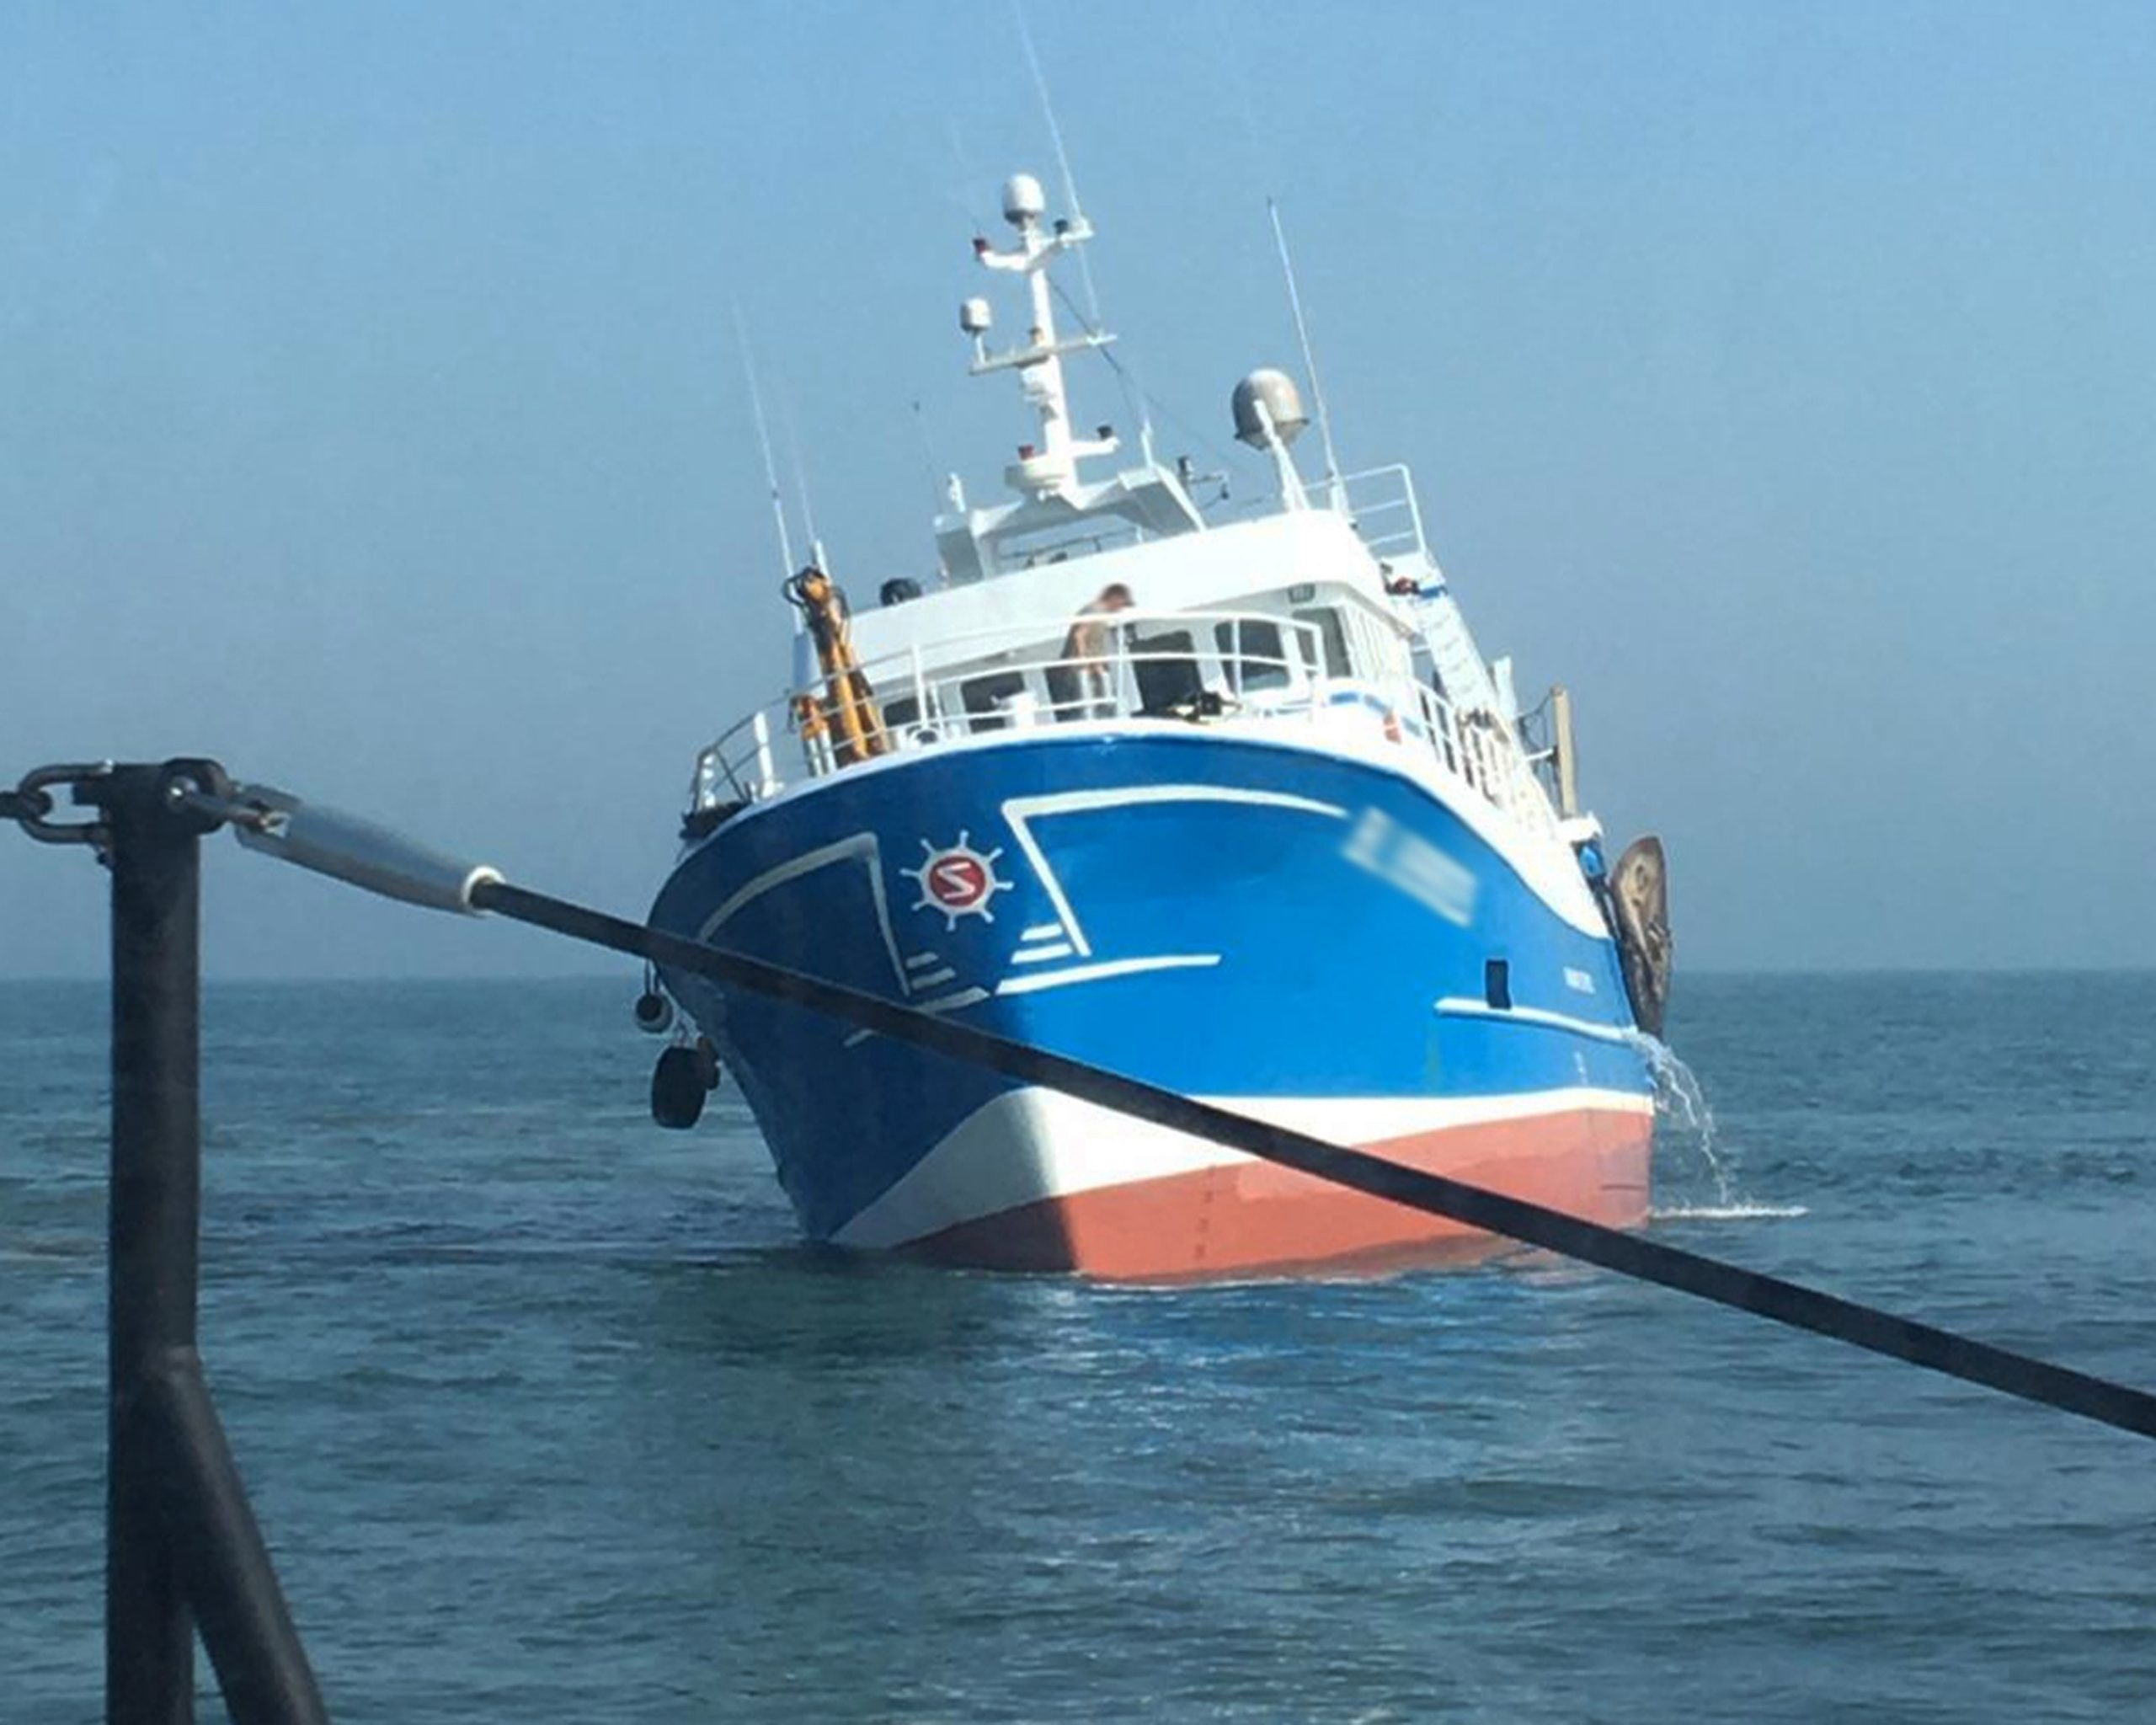 The grounded French-registered trawler off Corton: Photo: Lowestoft RNLI/Lucy Edmonds